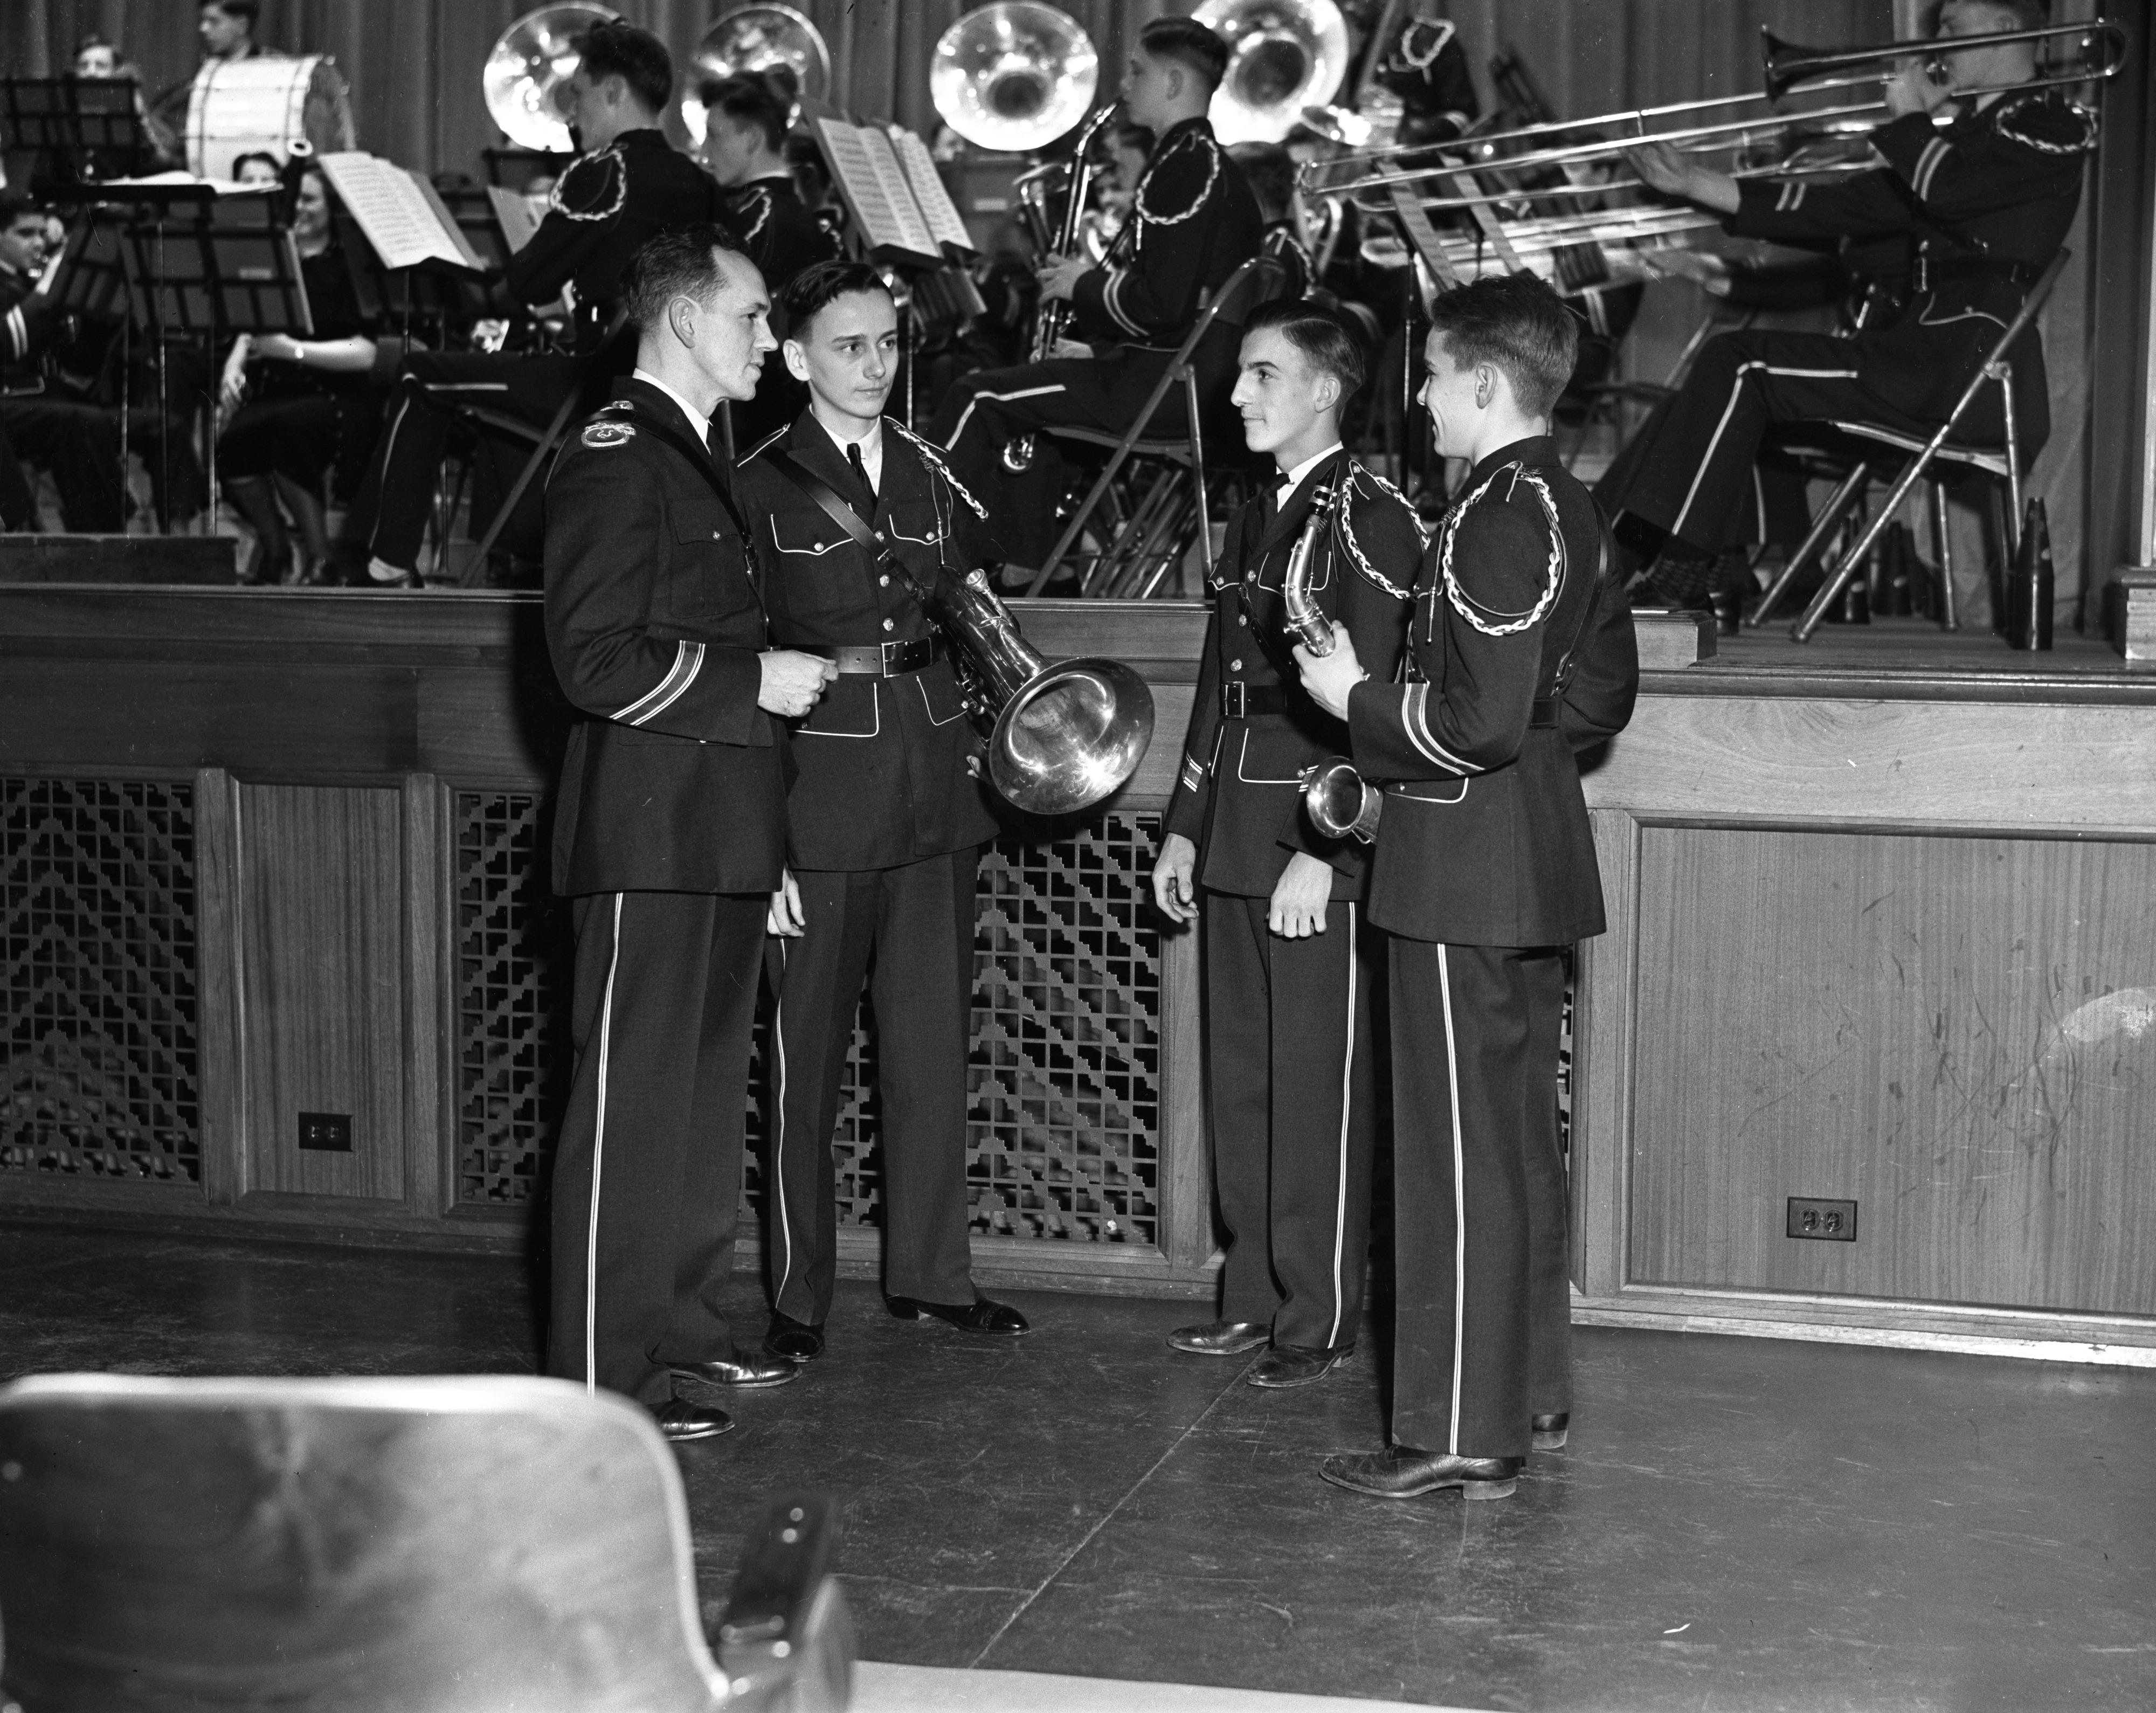 Ann Arbor High School Band Boasts New Uniforms, March 1937 image